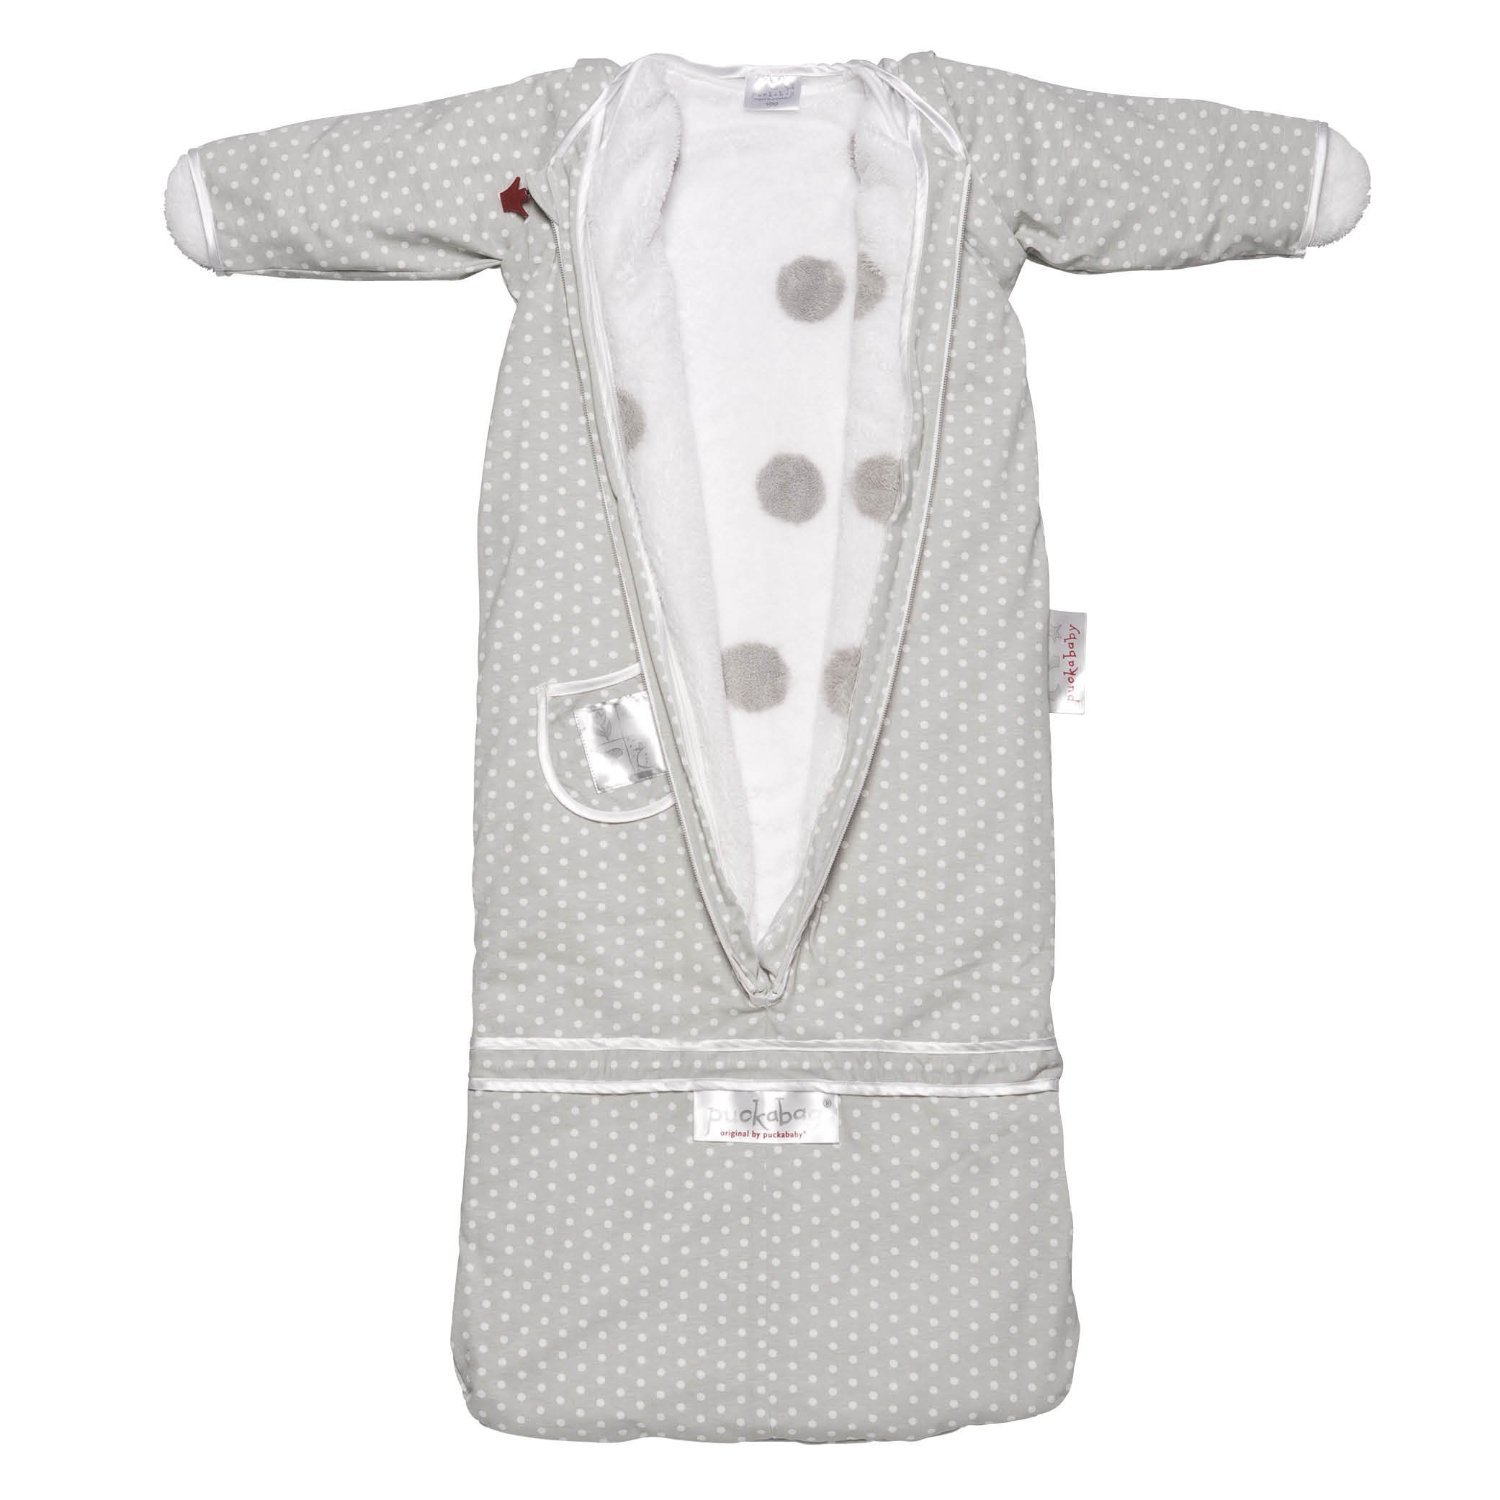 Puckababy The Bag 4 Seasons Baby and Toddler Sleeping Sack Gray Dot 7 M - 2.5 Yr